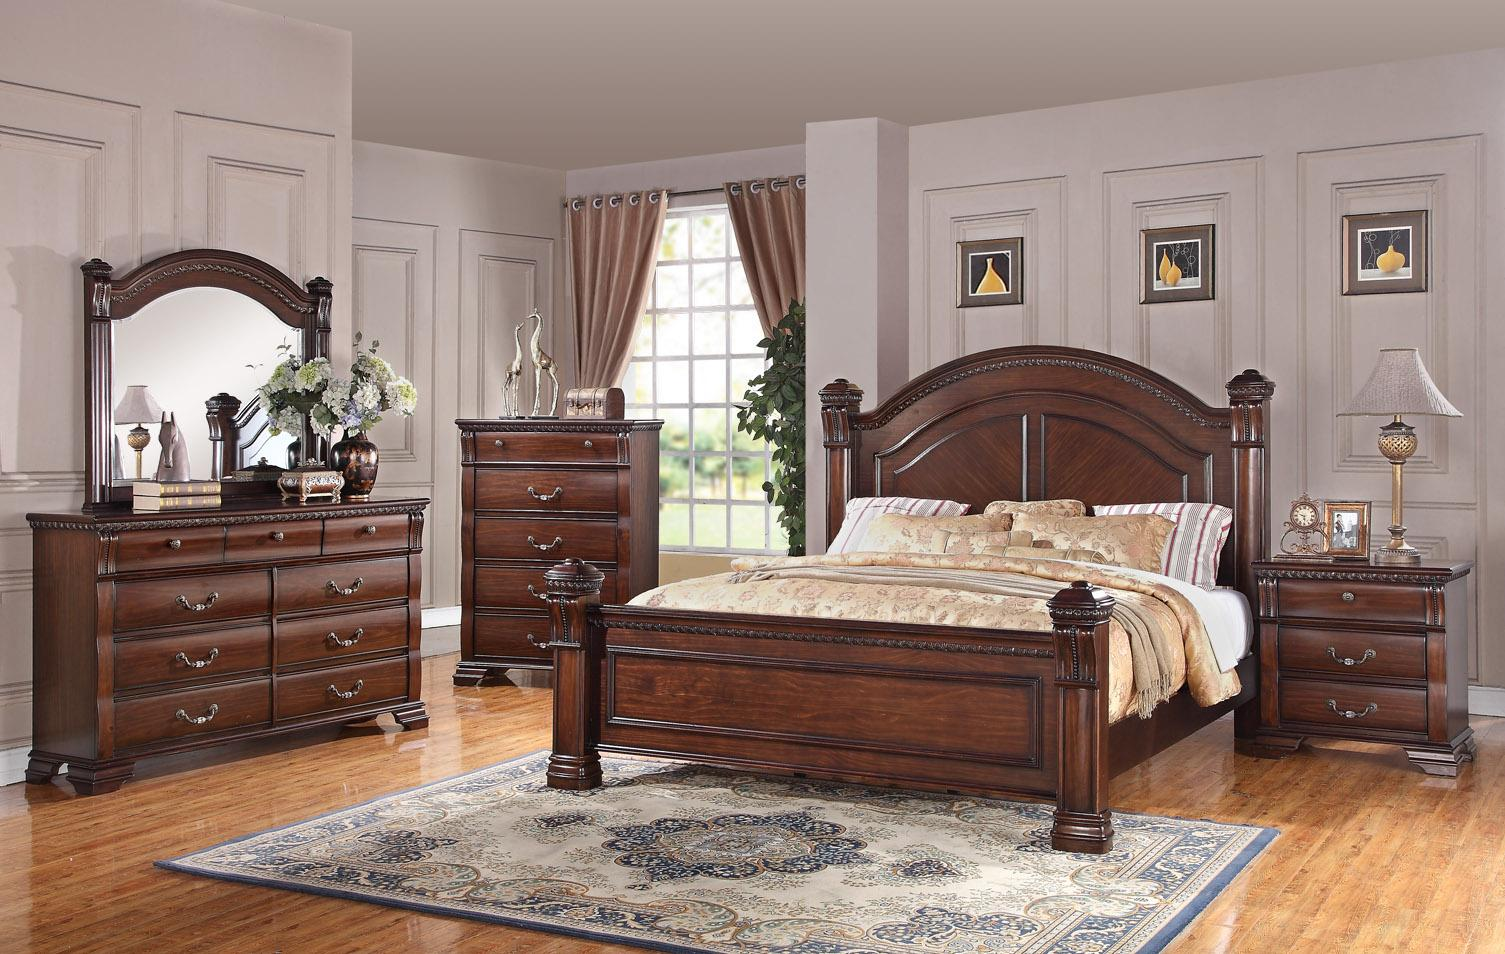 Isabella (14) by Austin Group - Royal Furniture - Austin Group